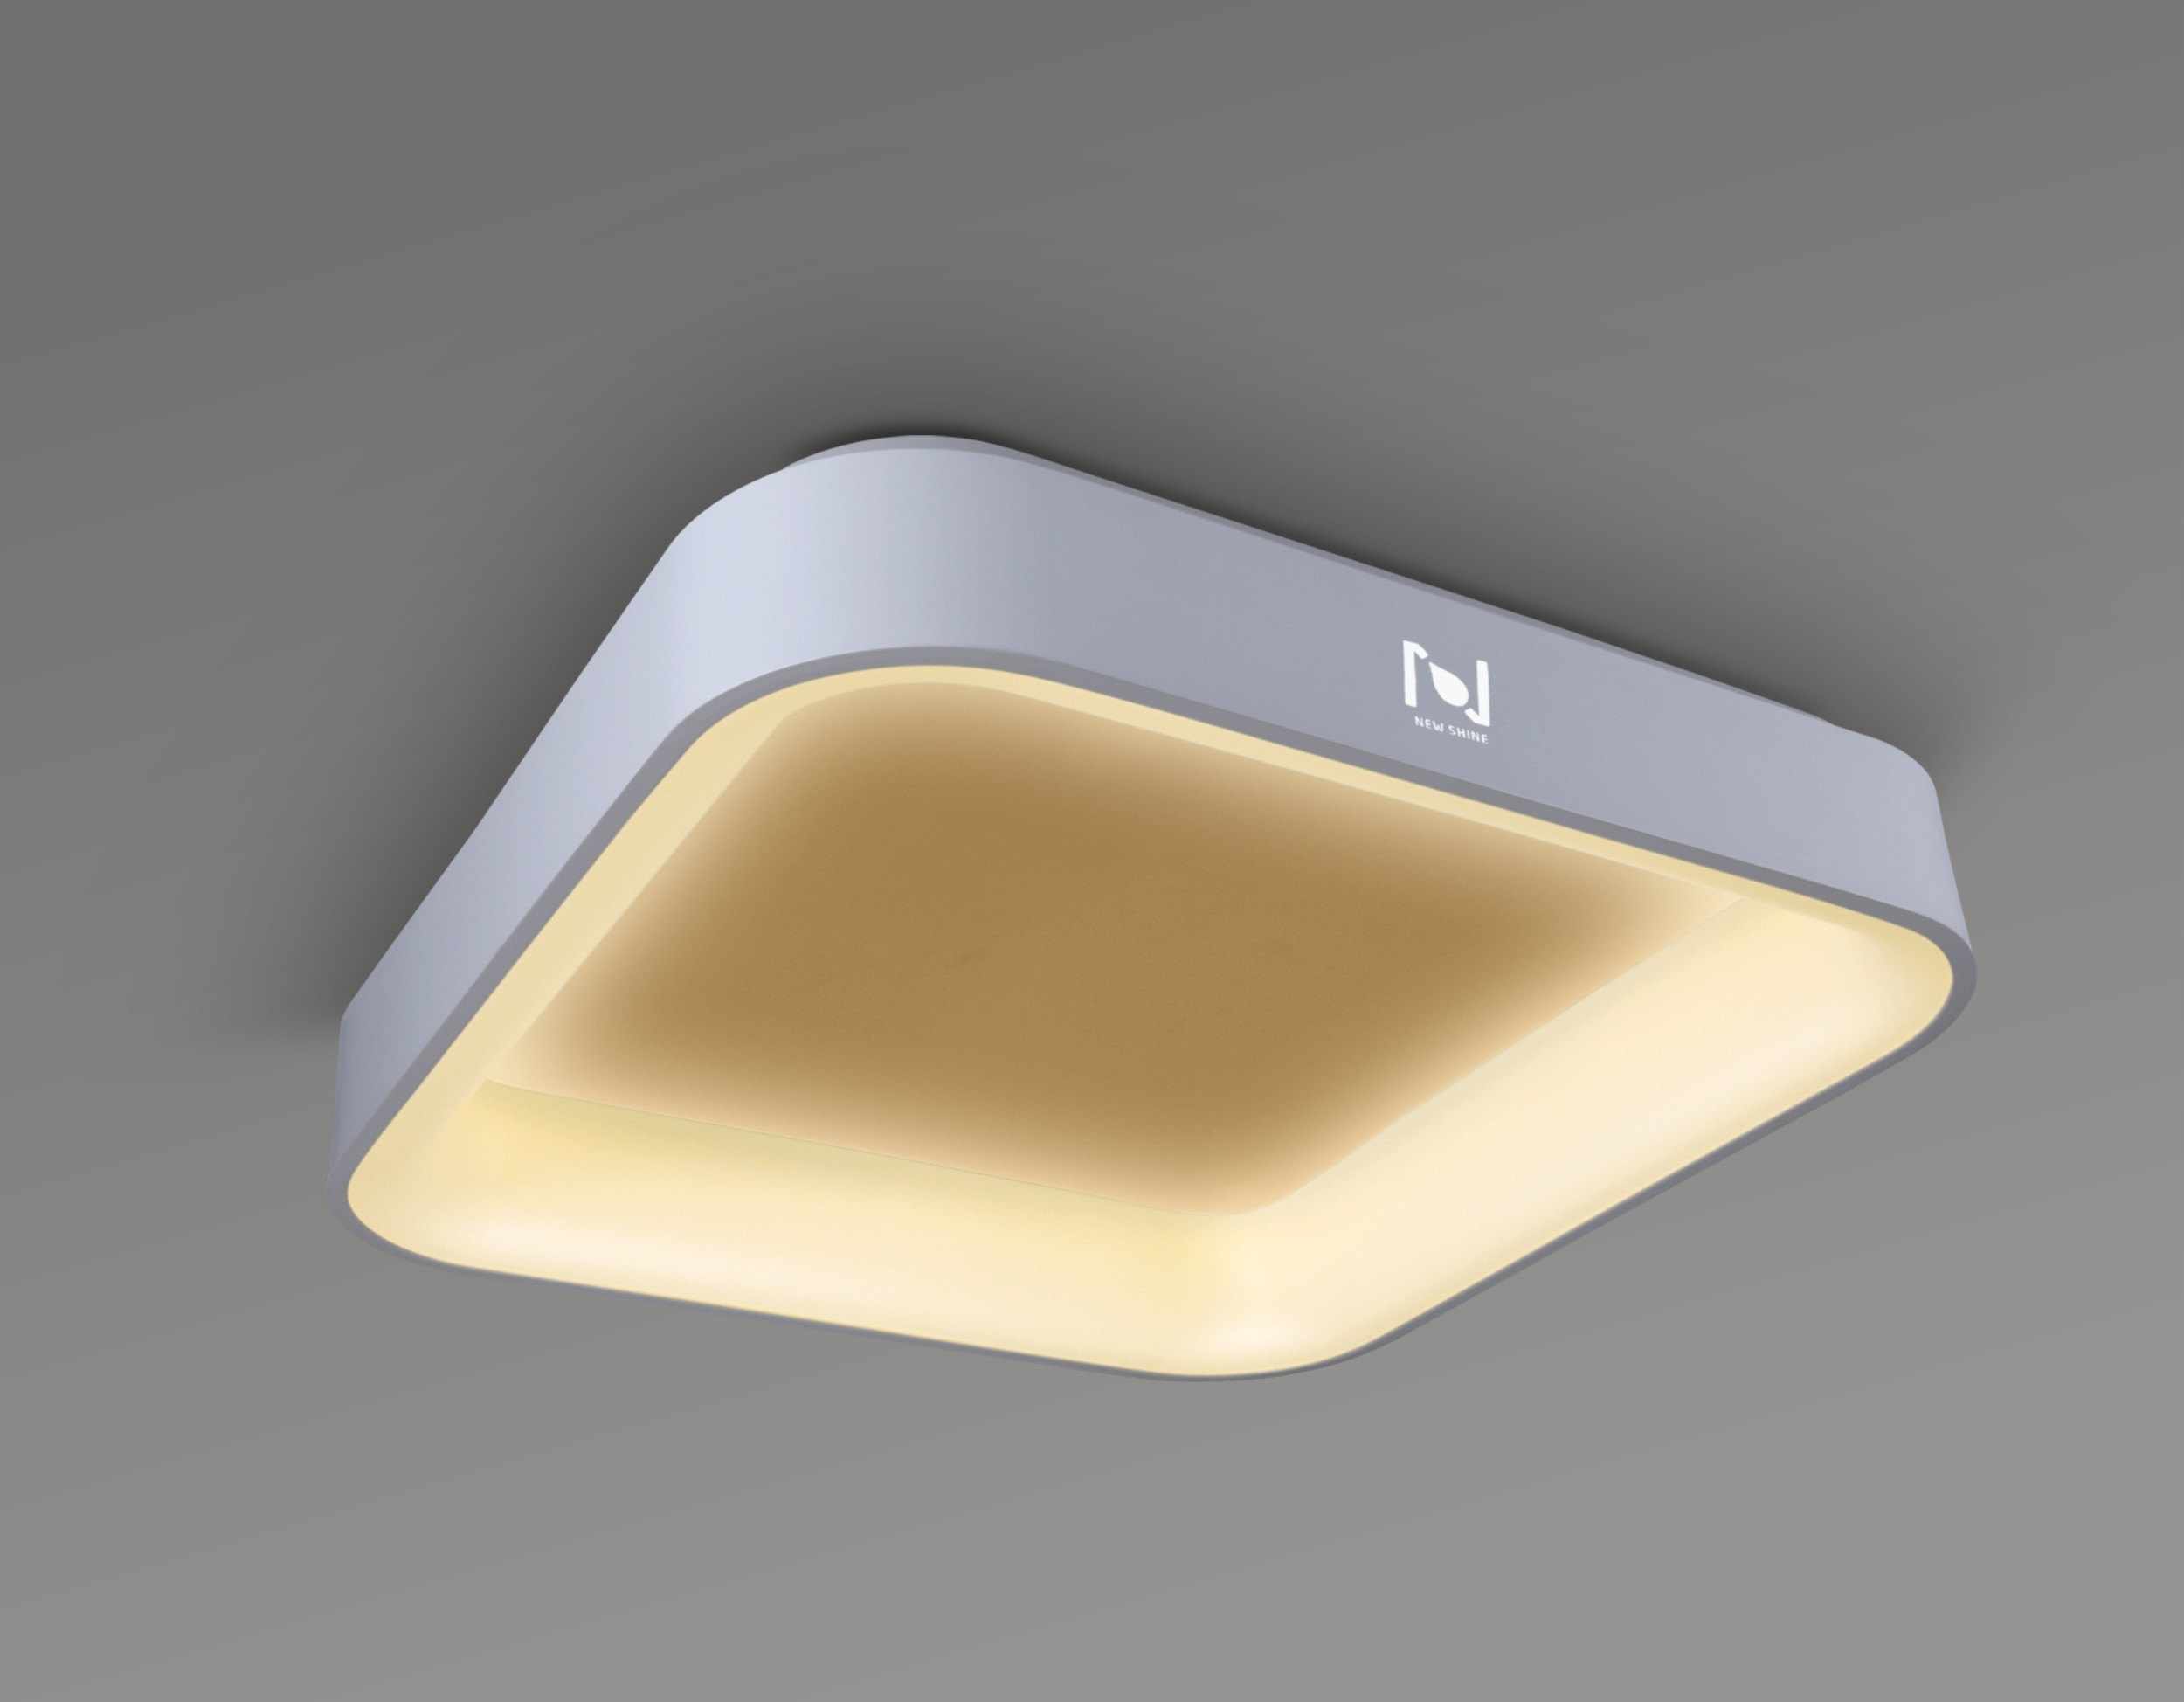 HOT SALE DECORATIVE LIGHTING SQUARE LED LIGHT WITH MOUNTED WAY LL0202M-15W